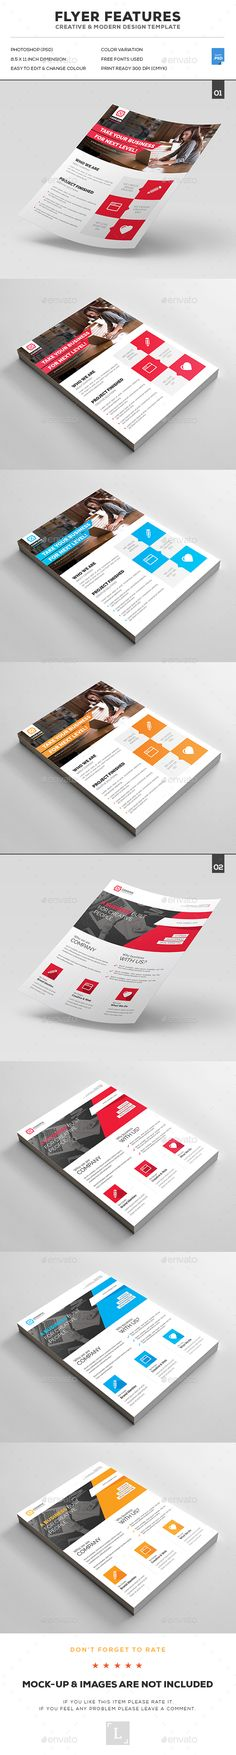 4 Corporate Business Flyer Templates Bundle V3 Business flyer - flyer background template